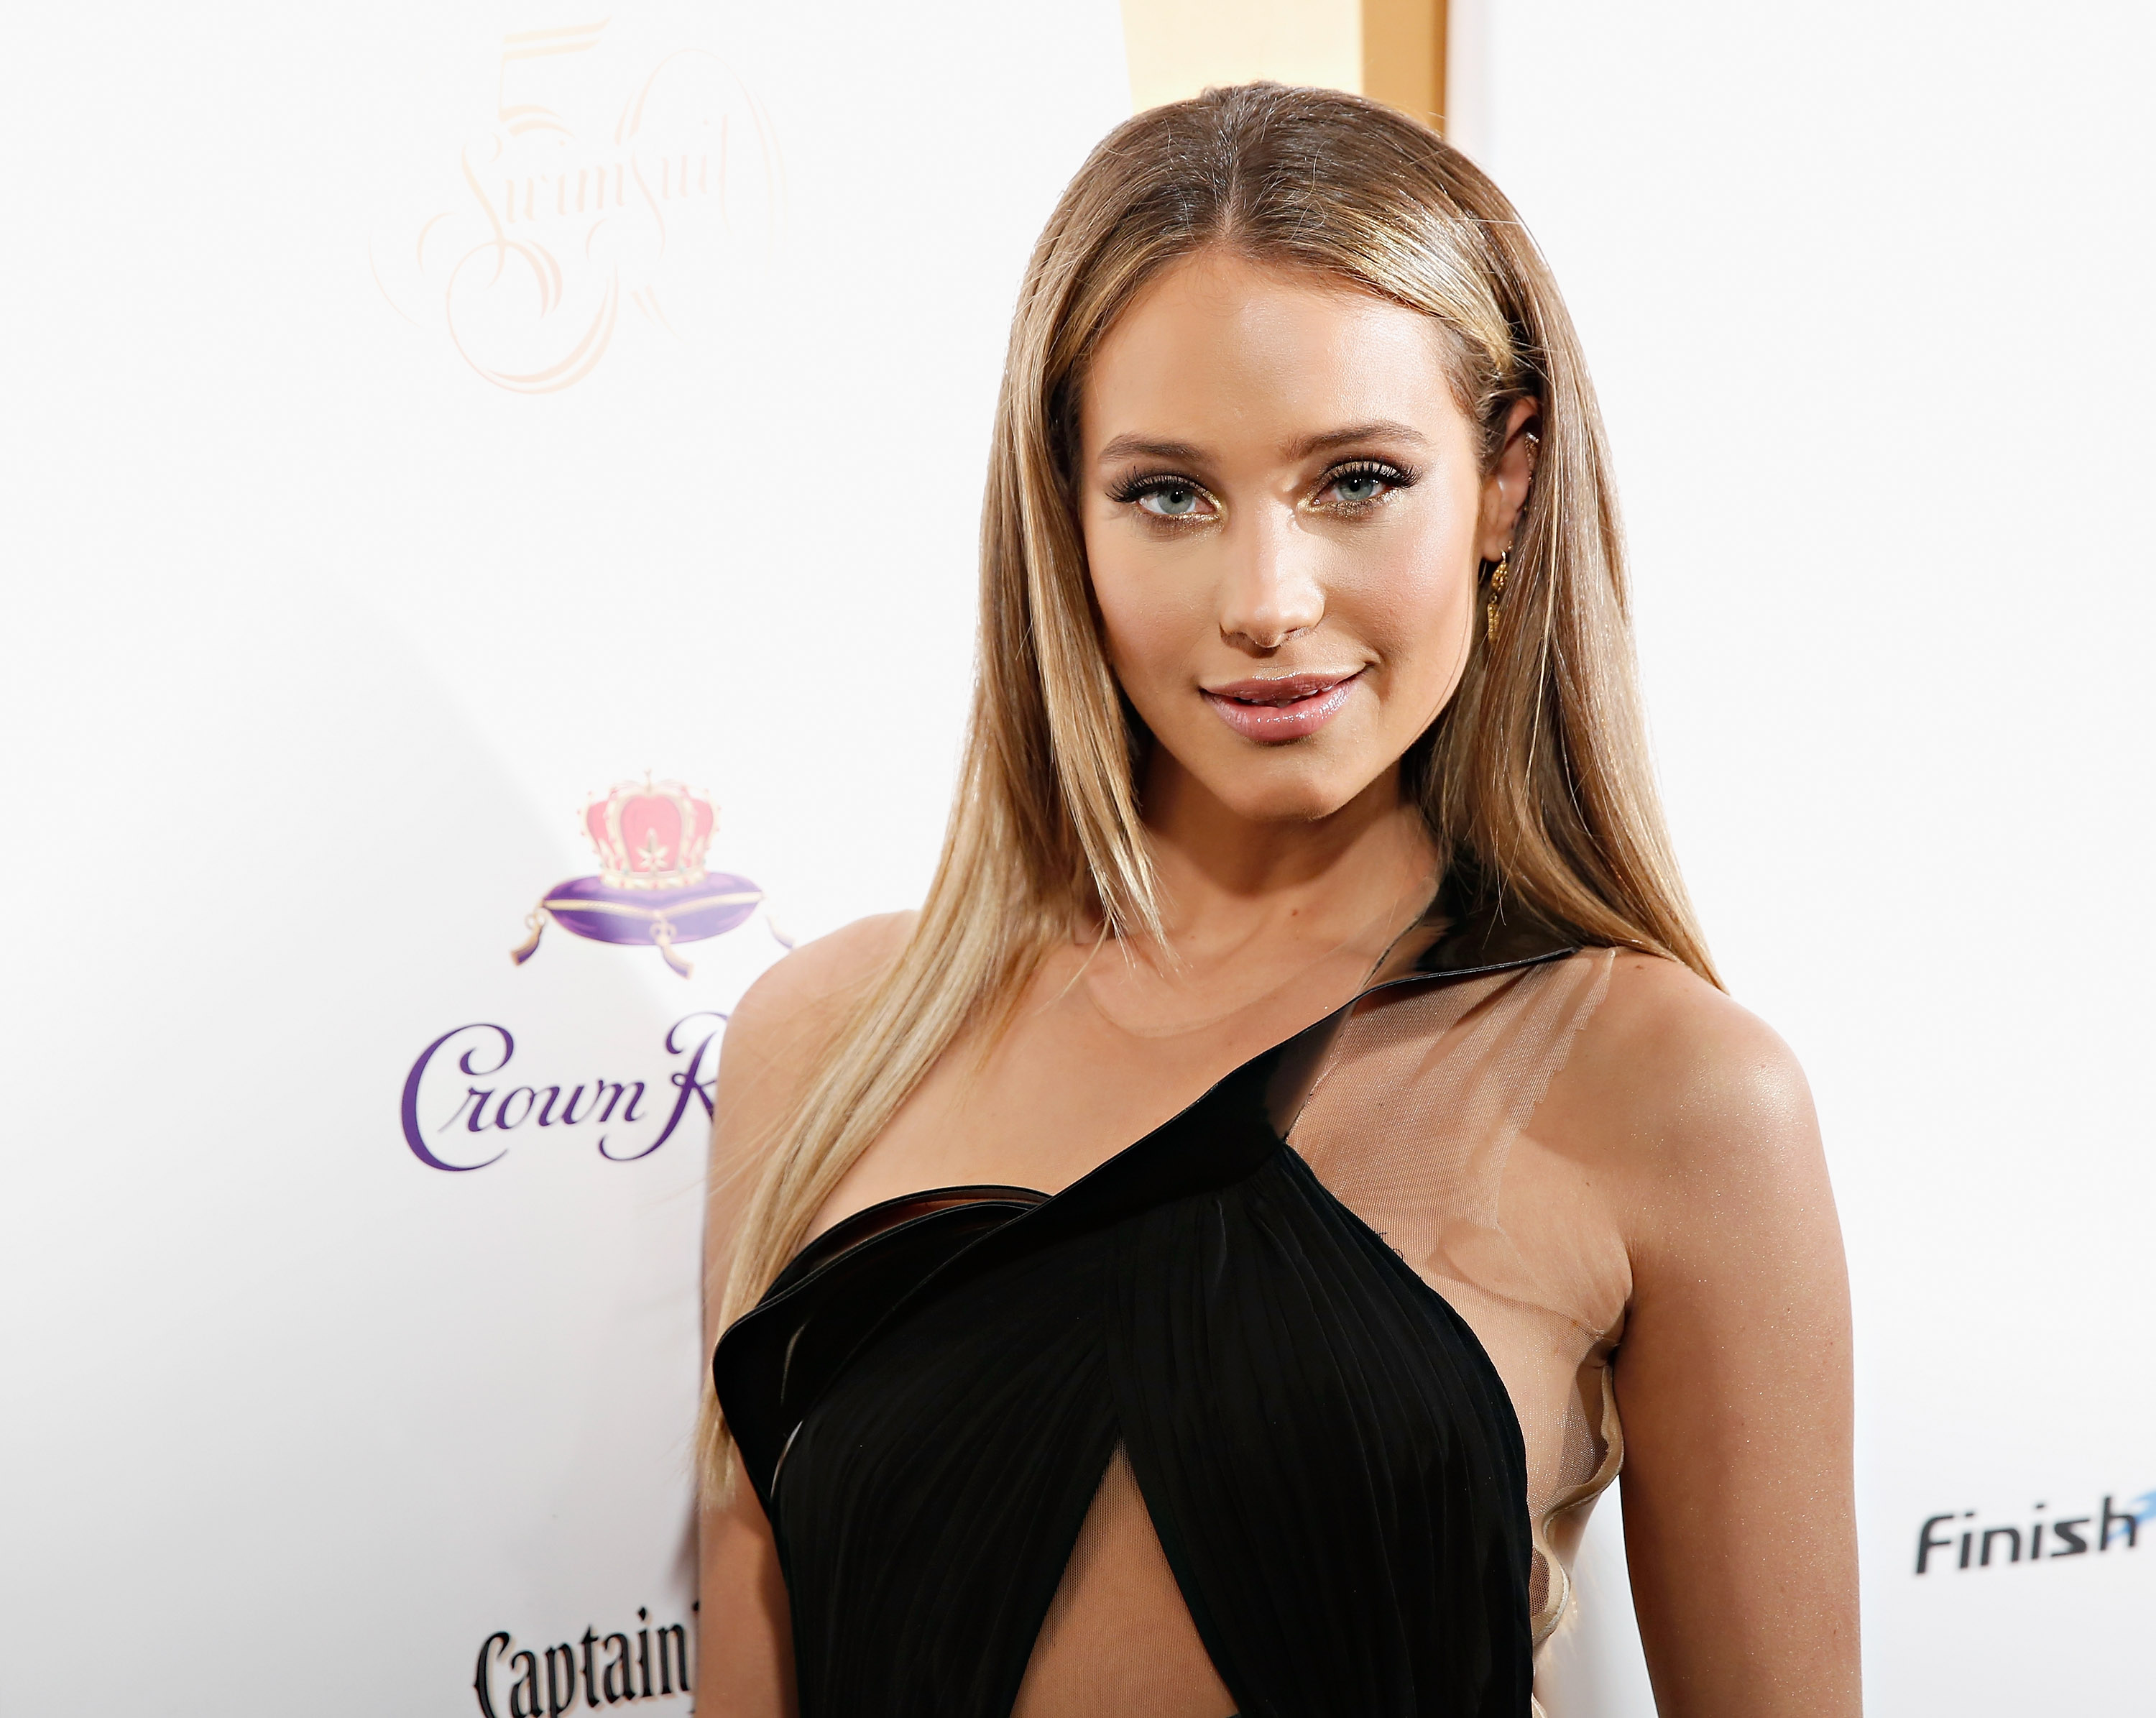 Hannah Davis nudes (84 pictures), young Paparazzi, Twitter, cleavage 2015